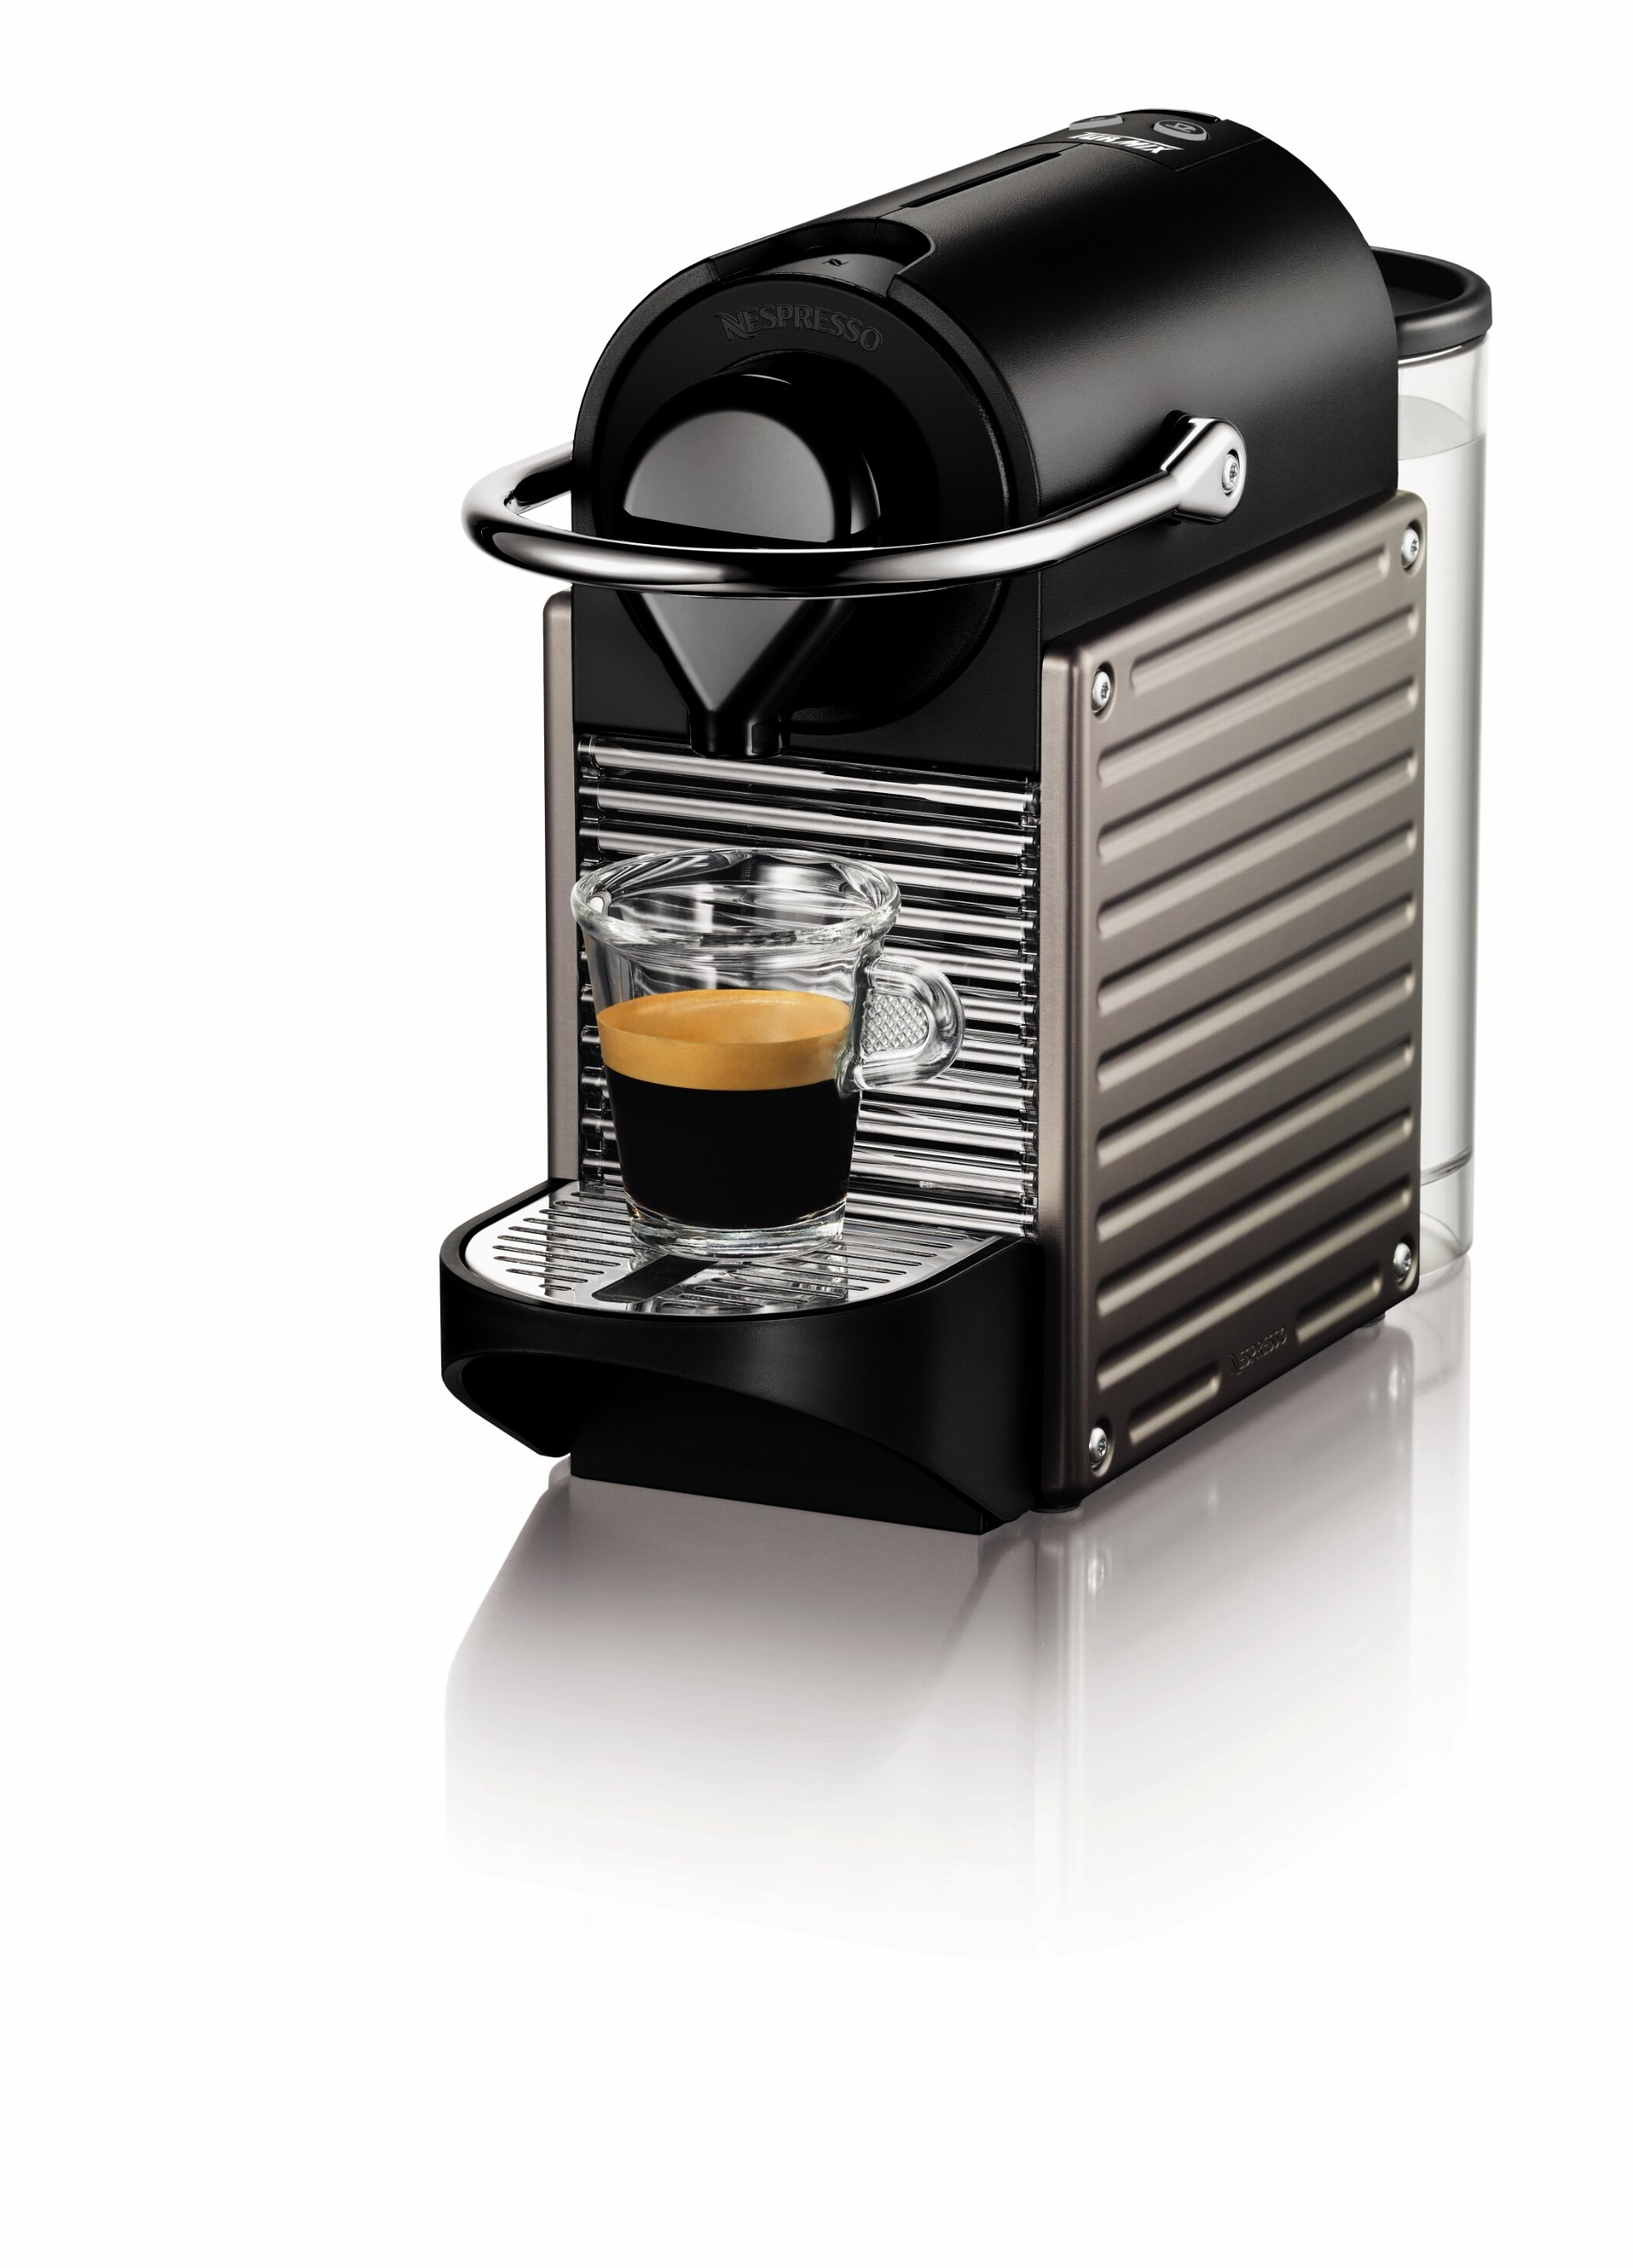 Top 10 Best Espresso Machines Under 300 Great Value For